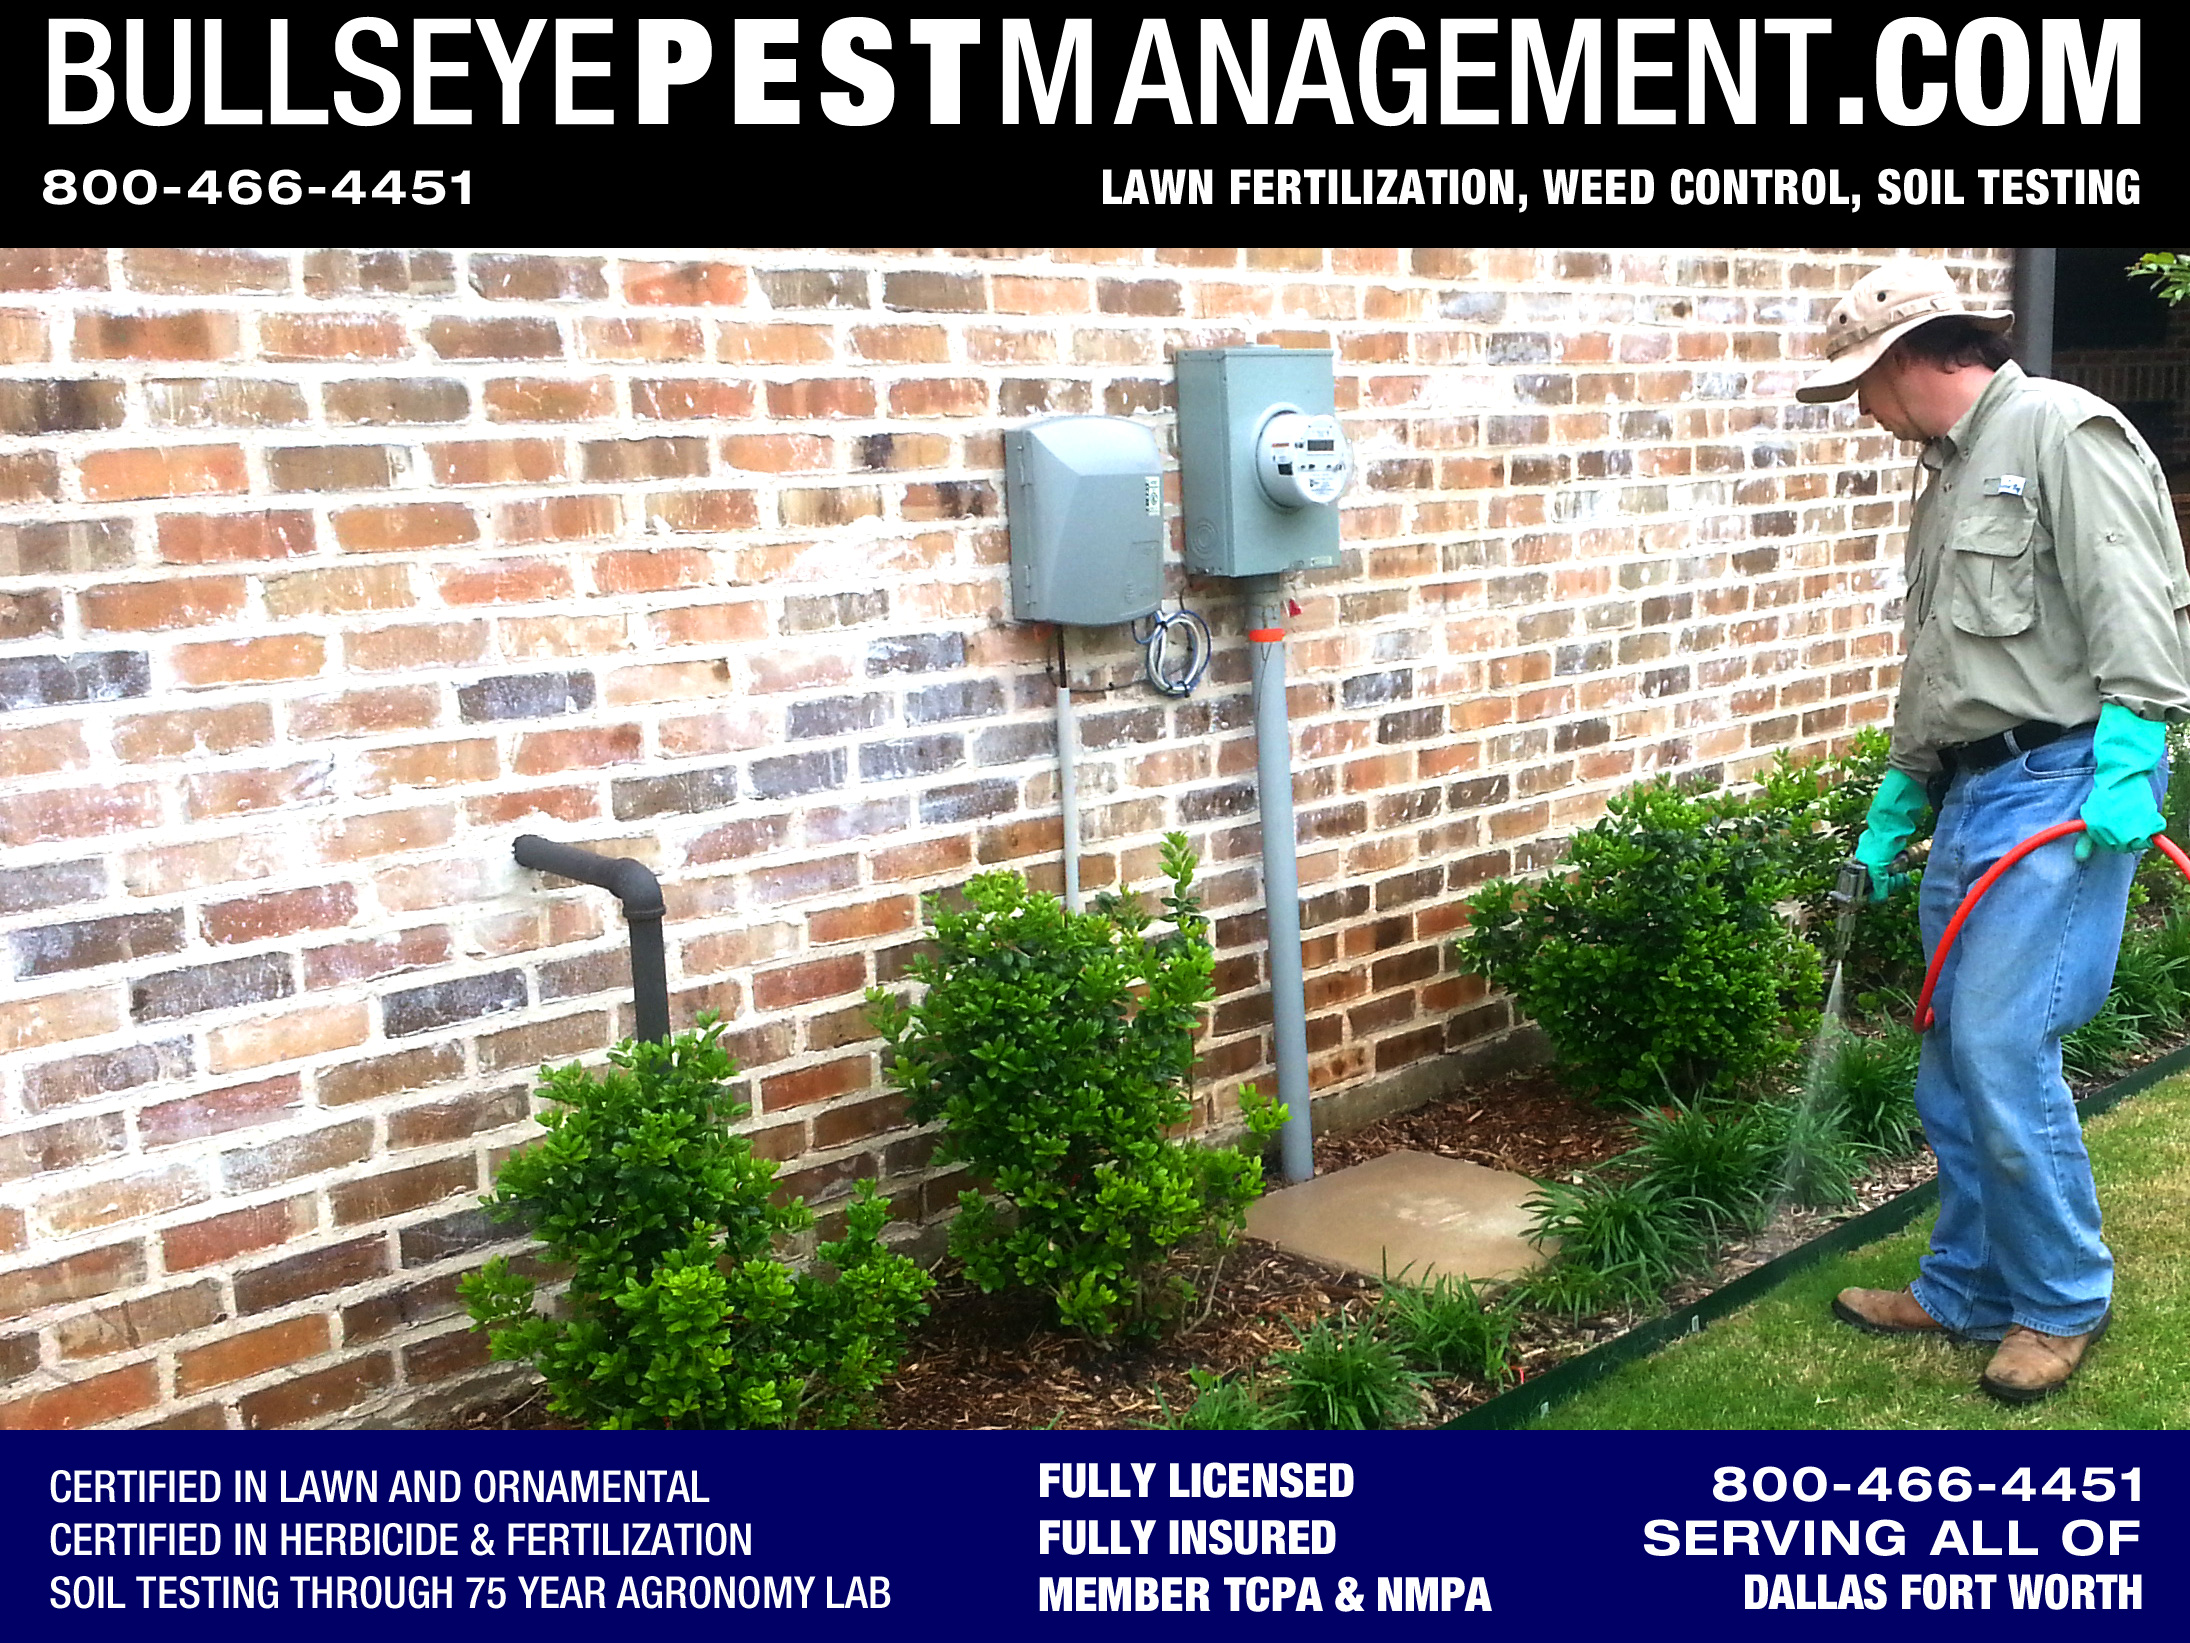 Bullseye Pest Managment performs Weed Control services for all of Dallas Fort Worth